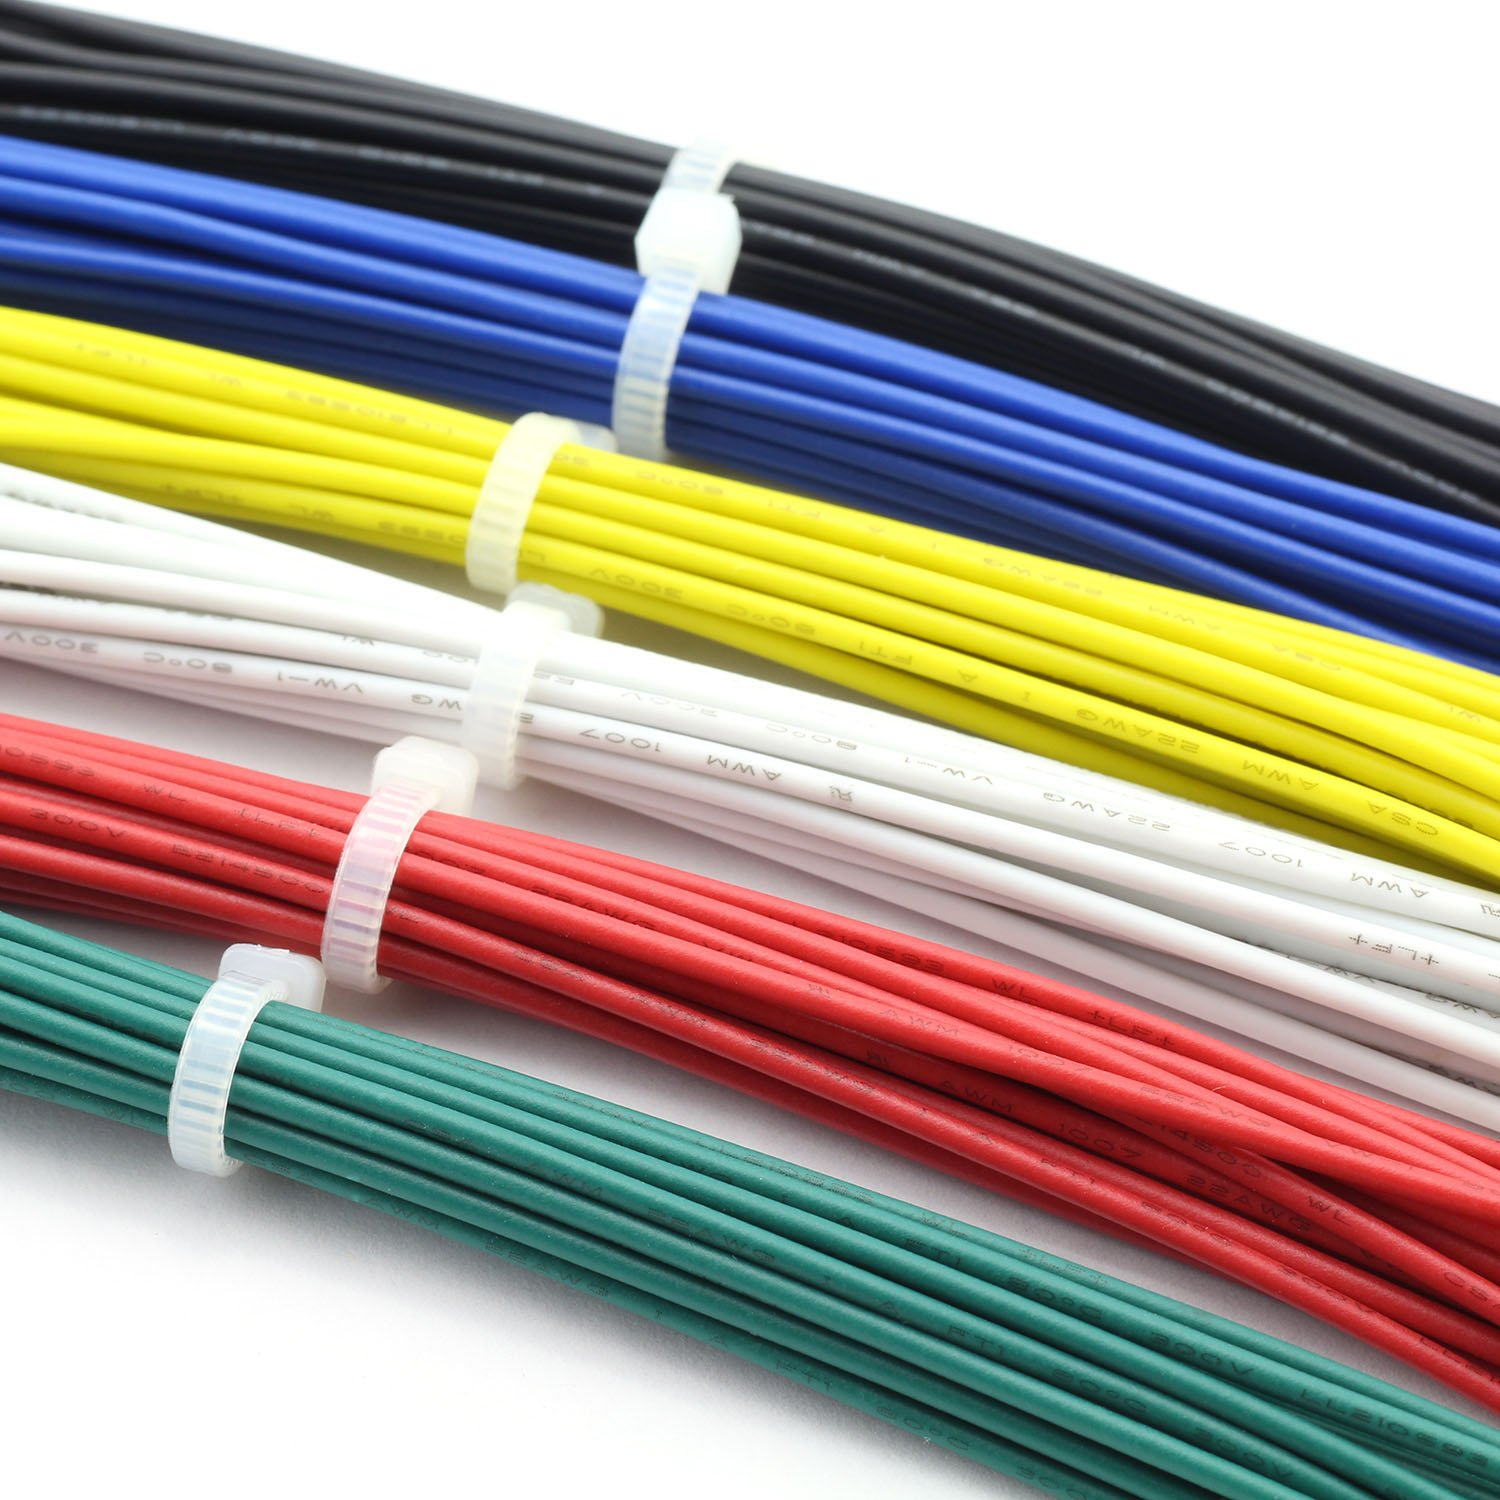 Magic/&Shell 120pcs 20CM 24AWG Double Tinned Jumper Wire Welding Lead Tin Plated Electronic Copper Wire 6 Color Red Black Blue Green White Yellow